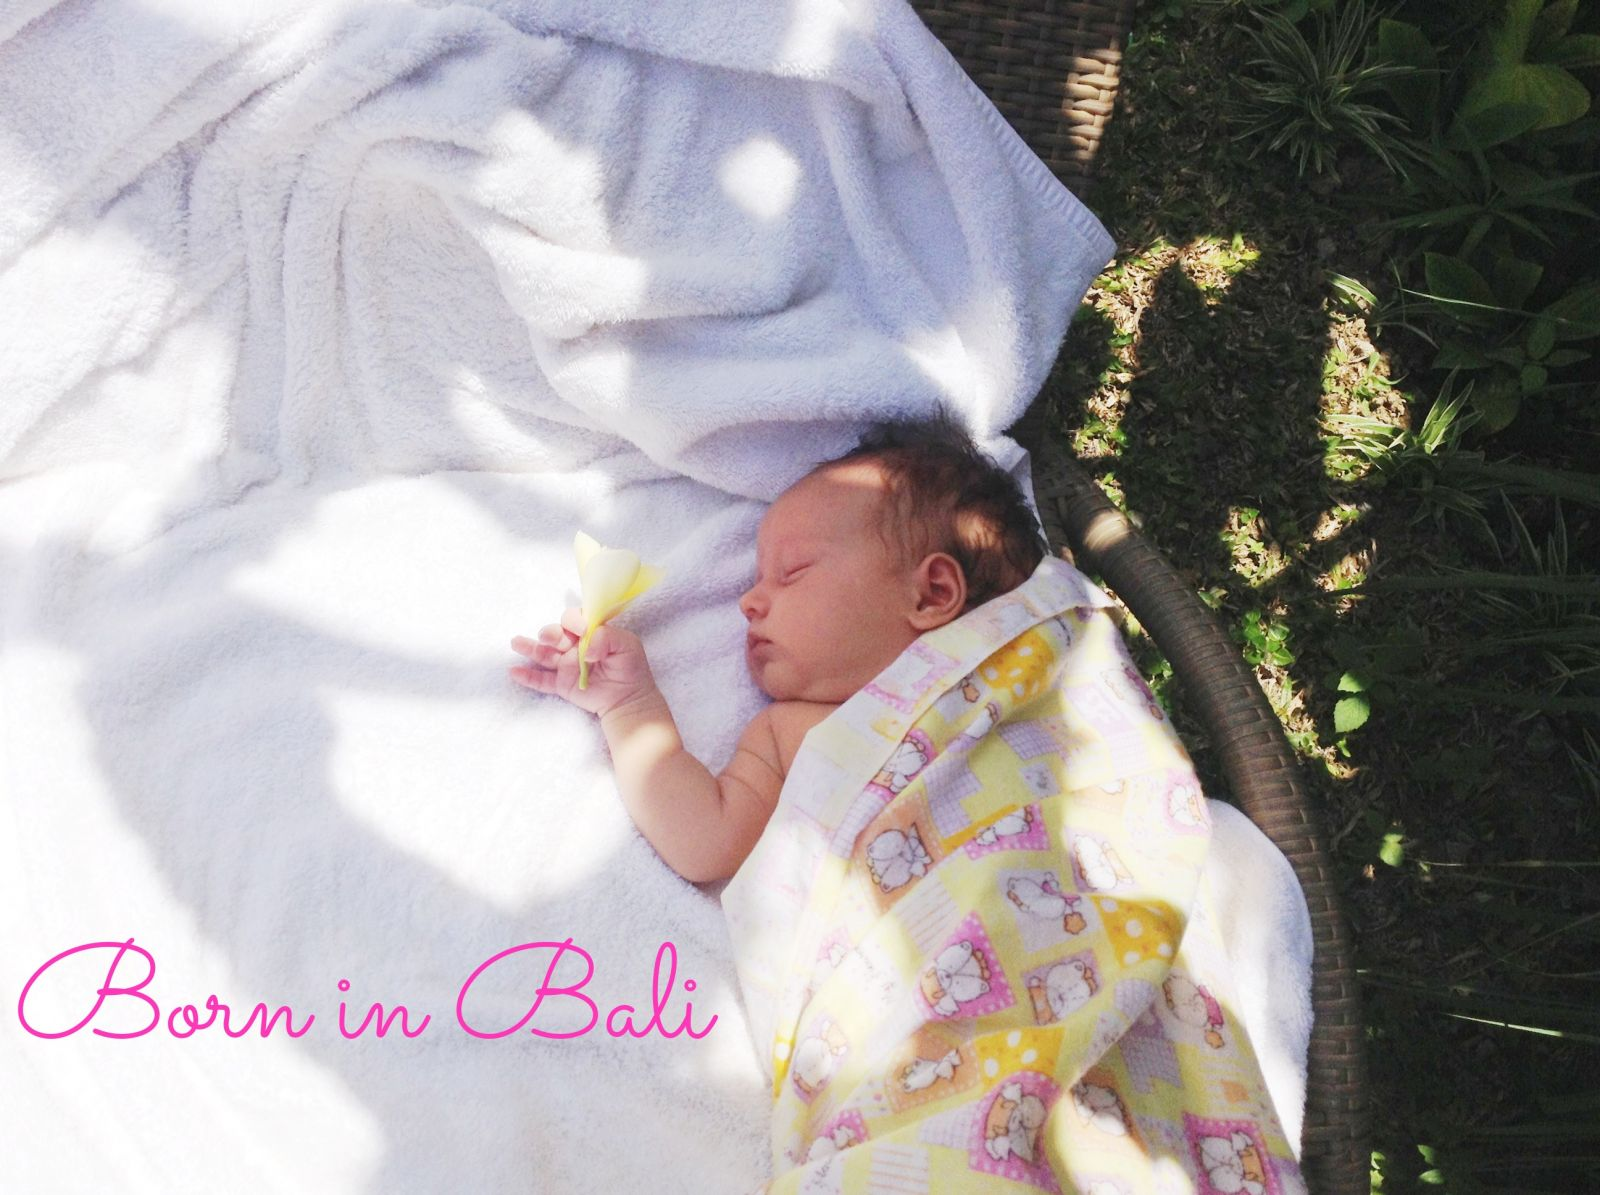 Lotus birth of a child in Bali: the story of a mother - image №3